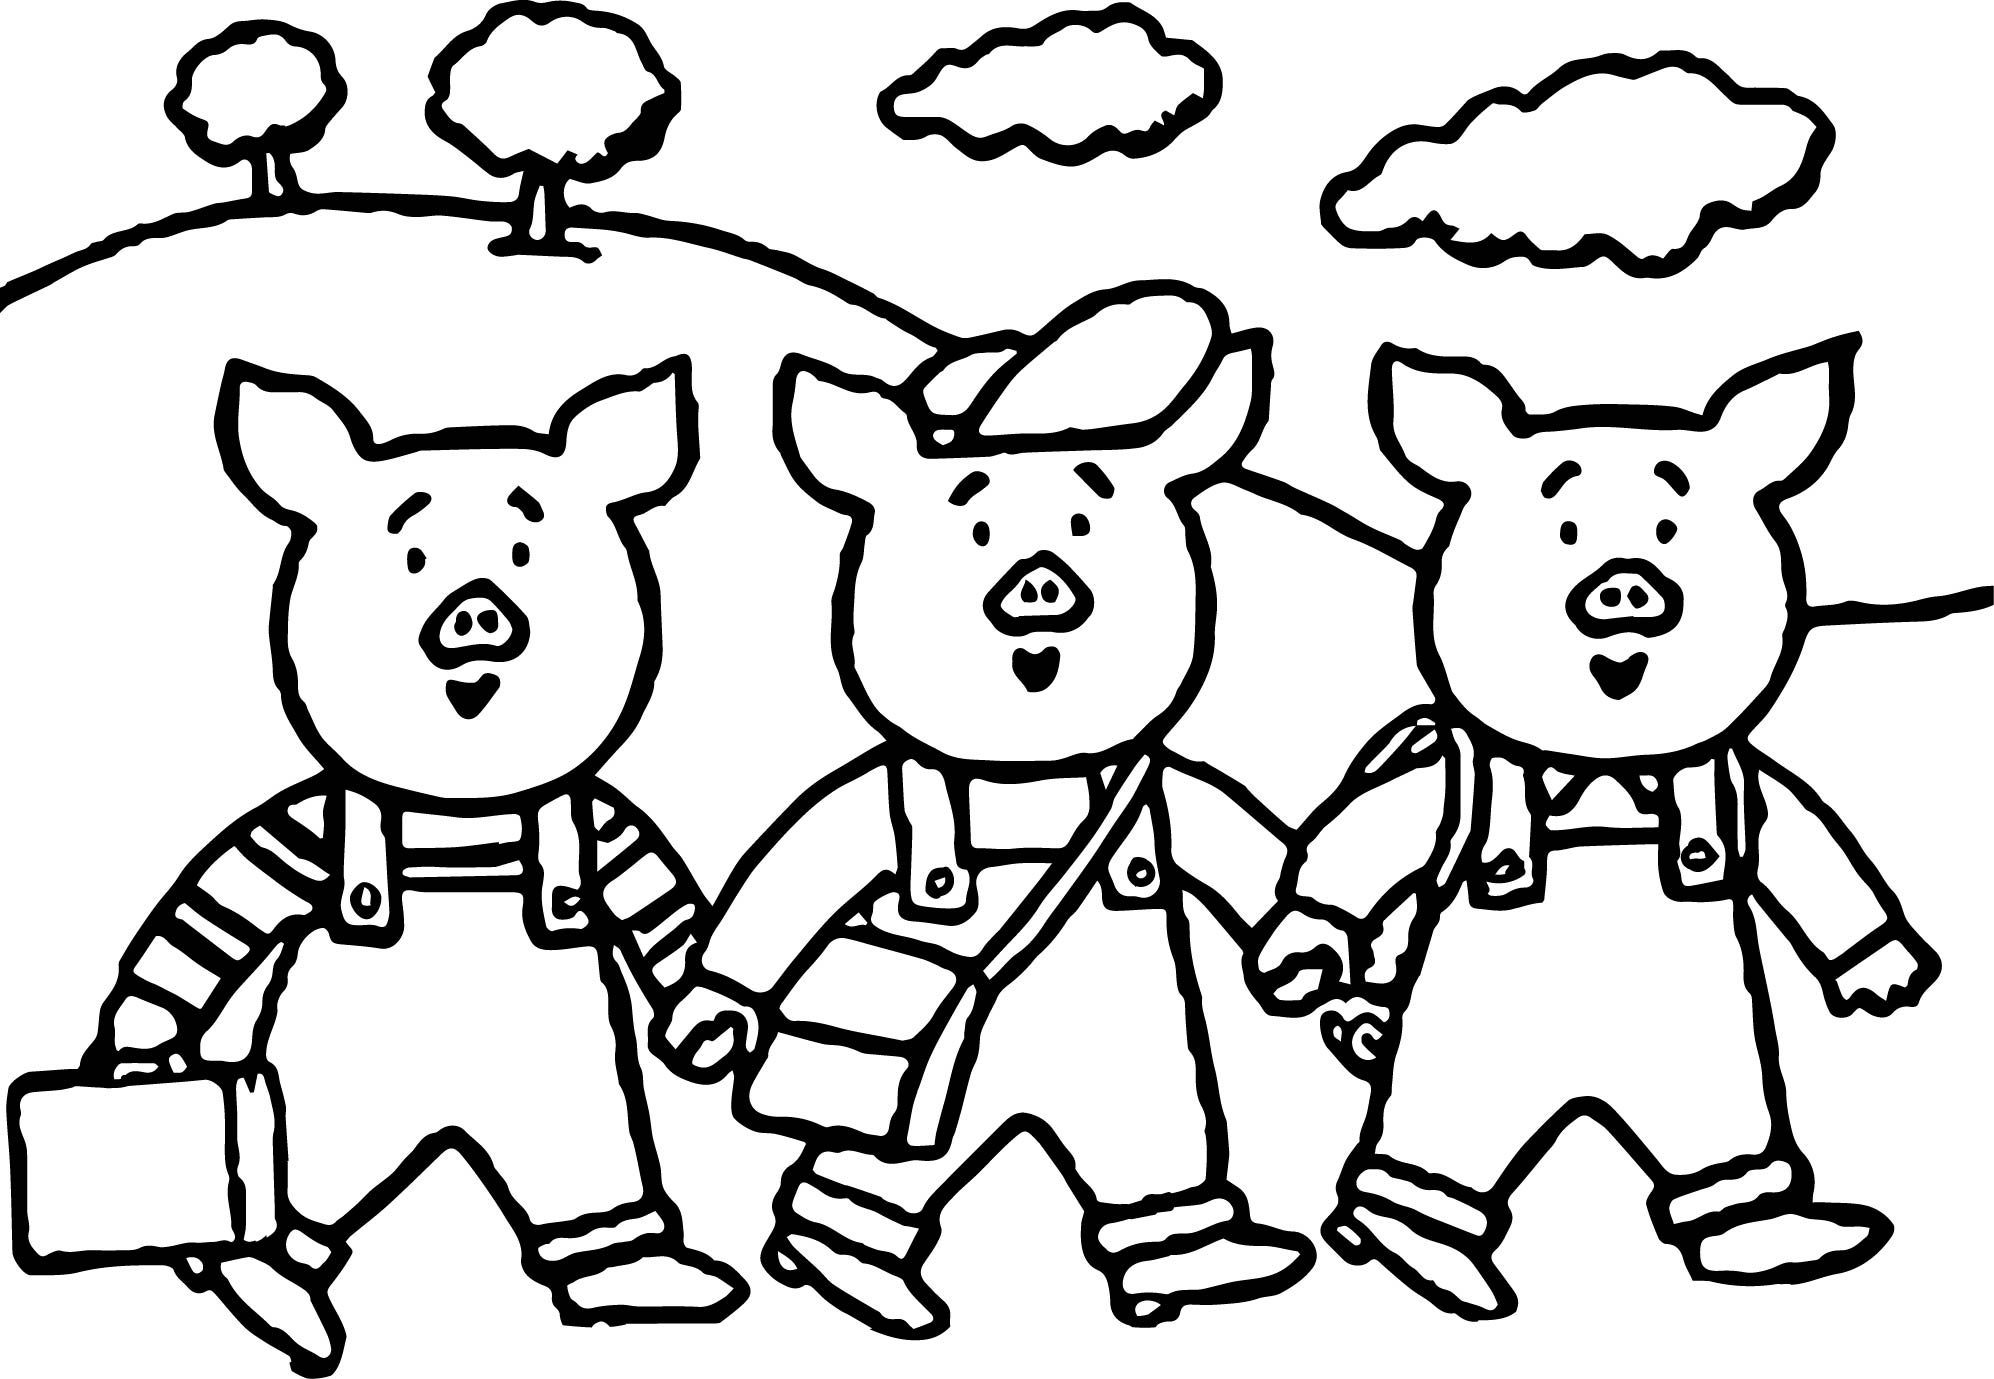 3 Little Pigs School Coloring Page